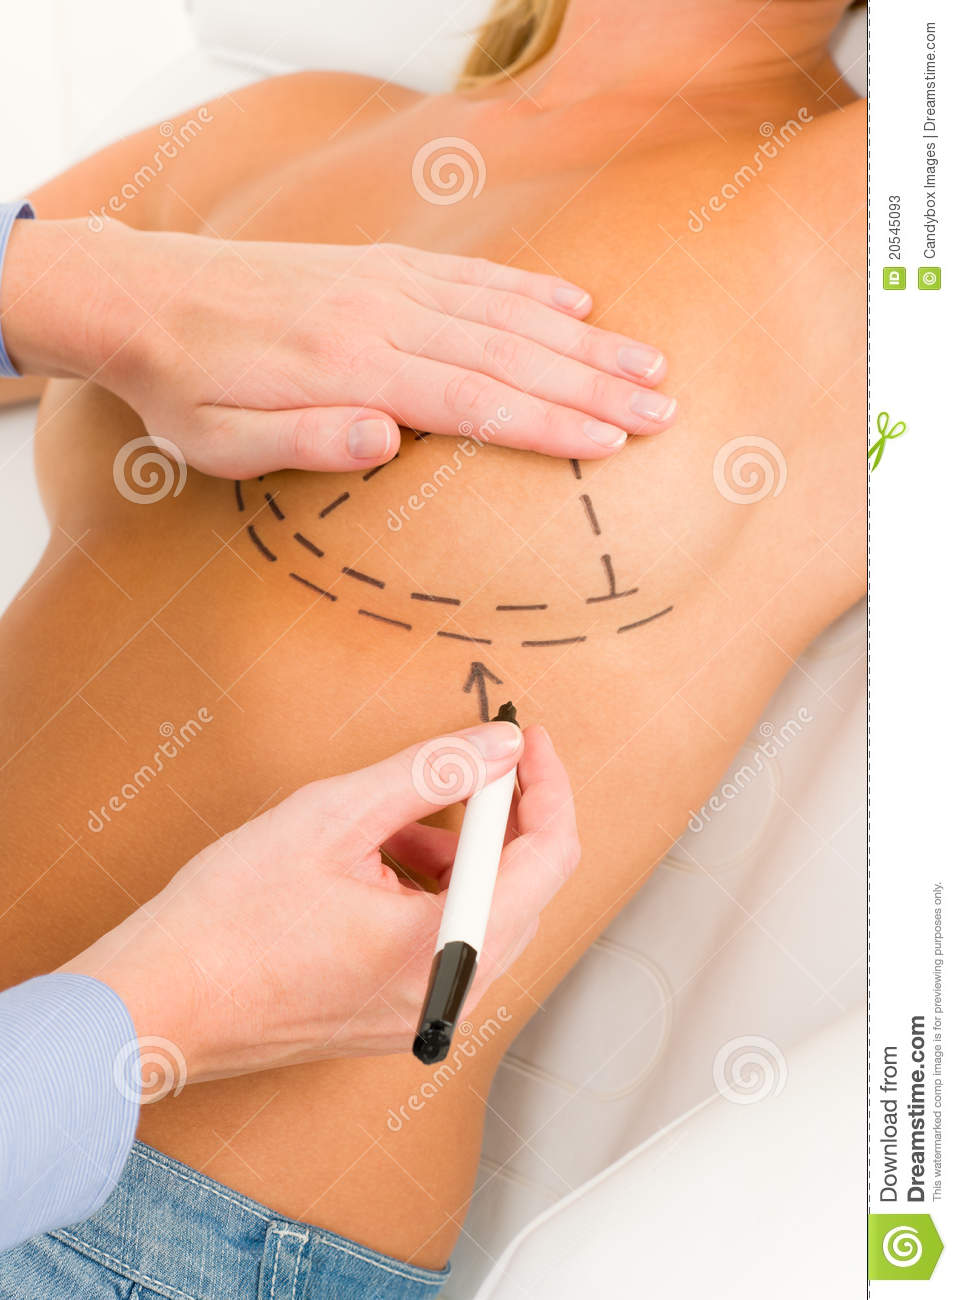 Plastic surgery doctor draw line patient breast stock photos image